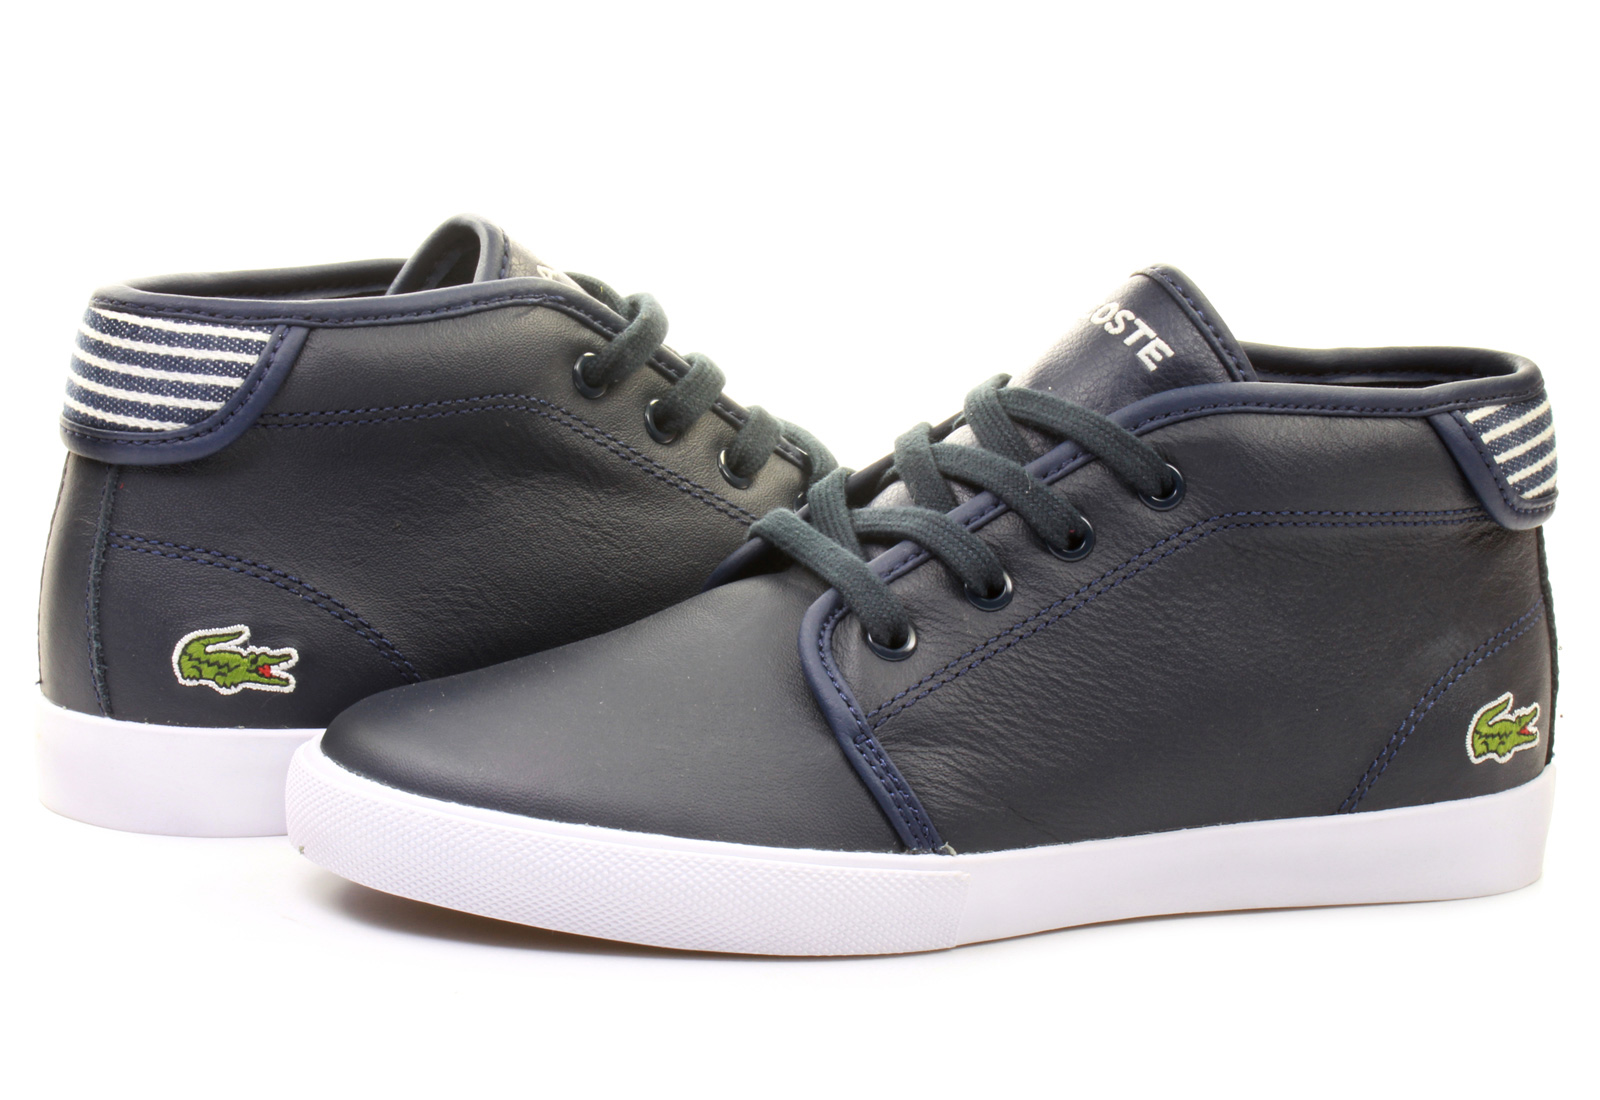 lacoste shoes ampthill 141spw0130 121 online shop for sneakers shoes and boots. Black Bedroom Furniture Sets. Home Design Ideas